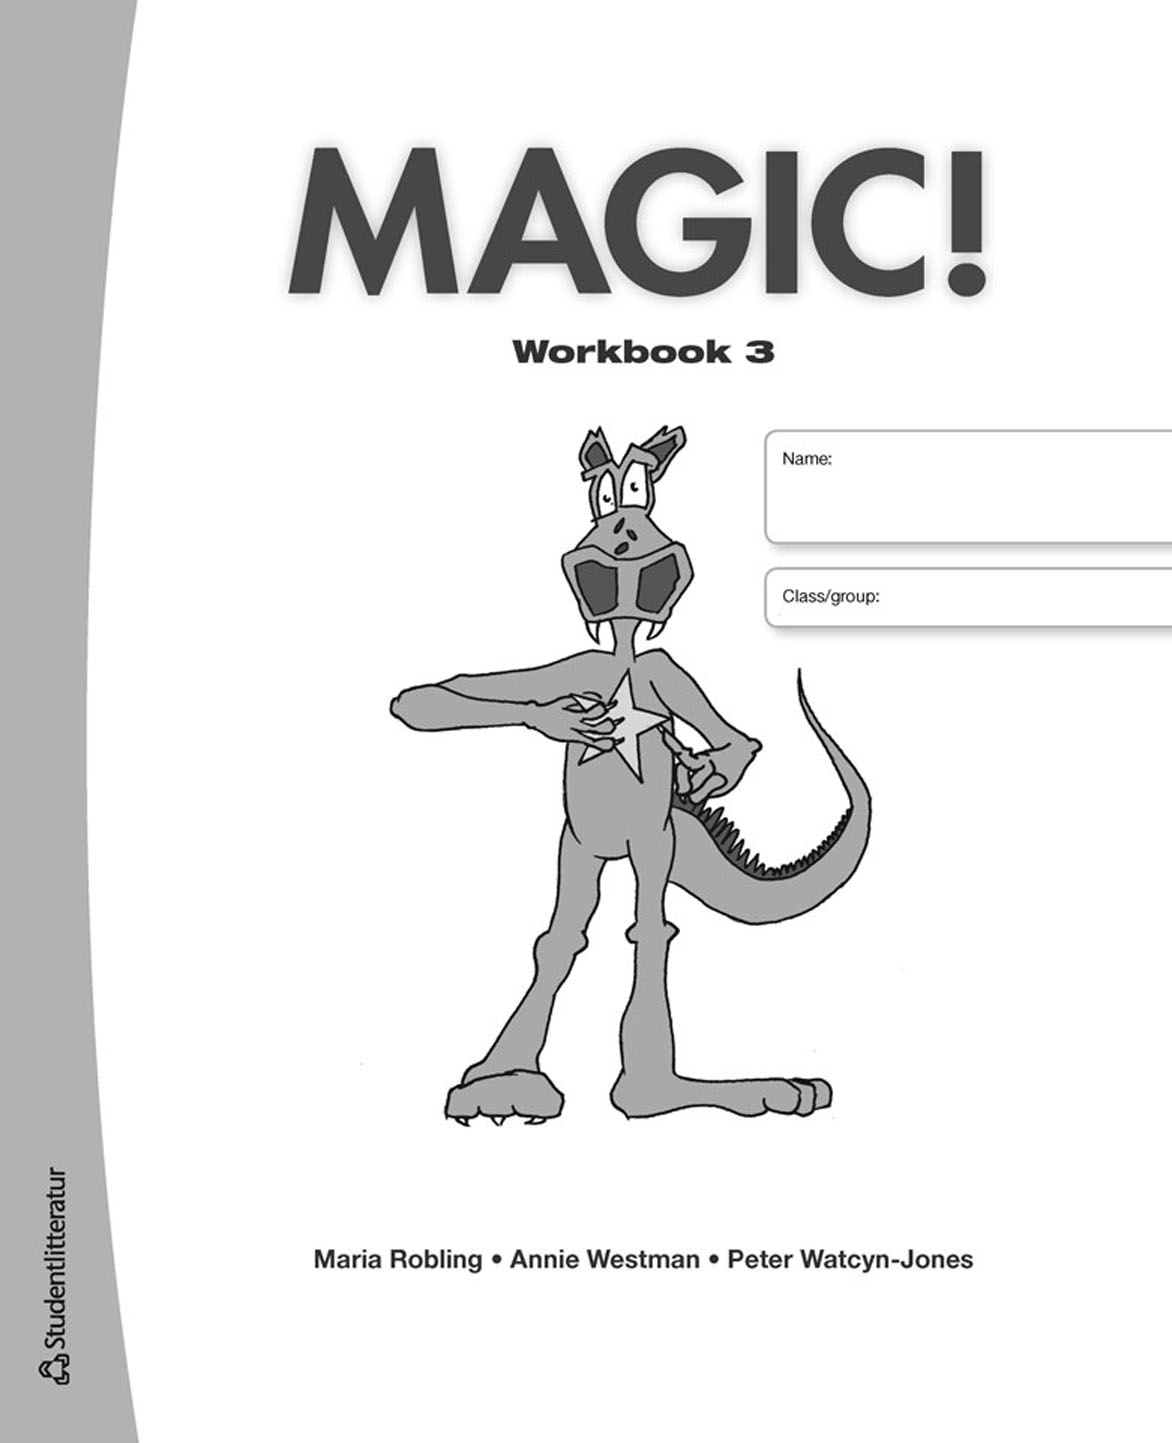 Magic! Workbook 3.